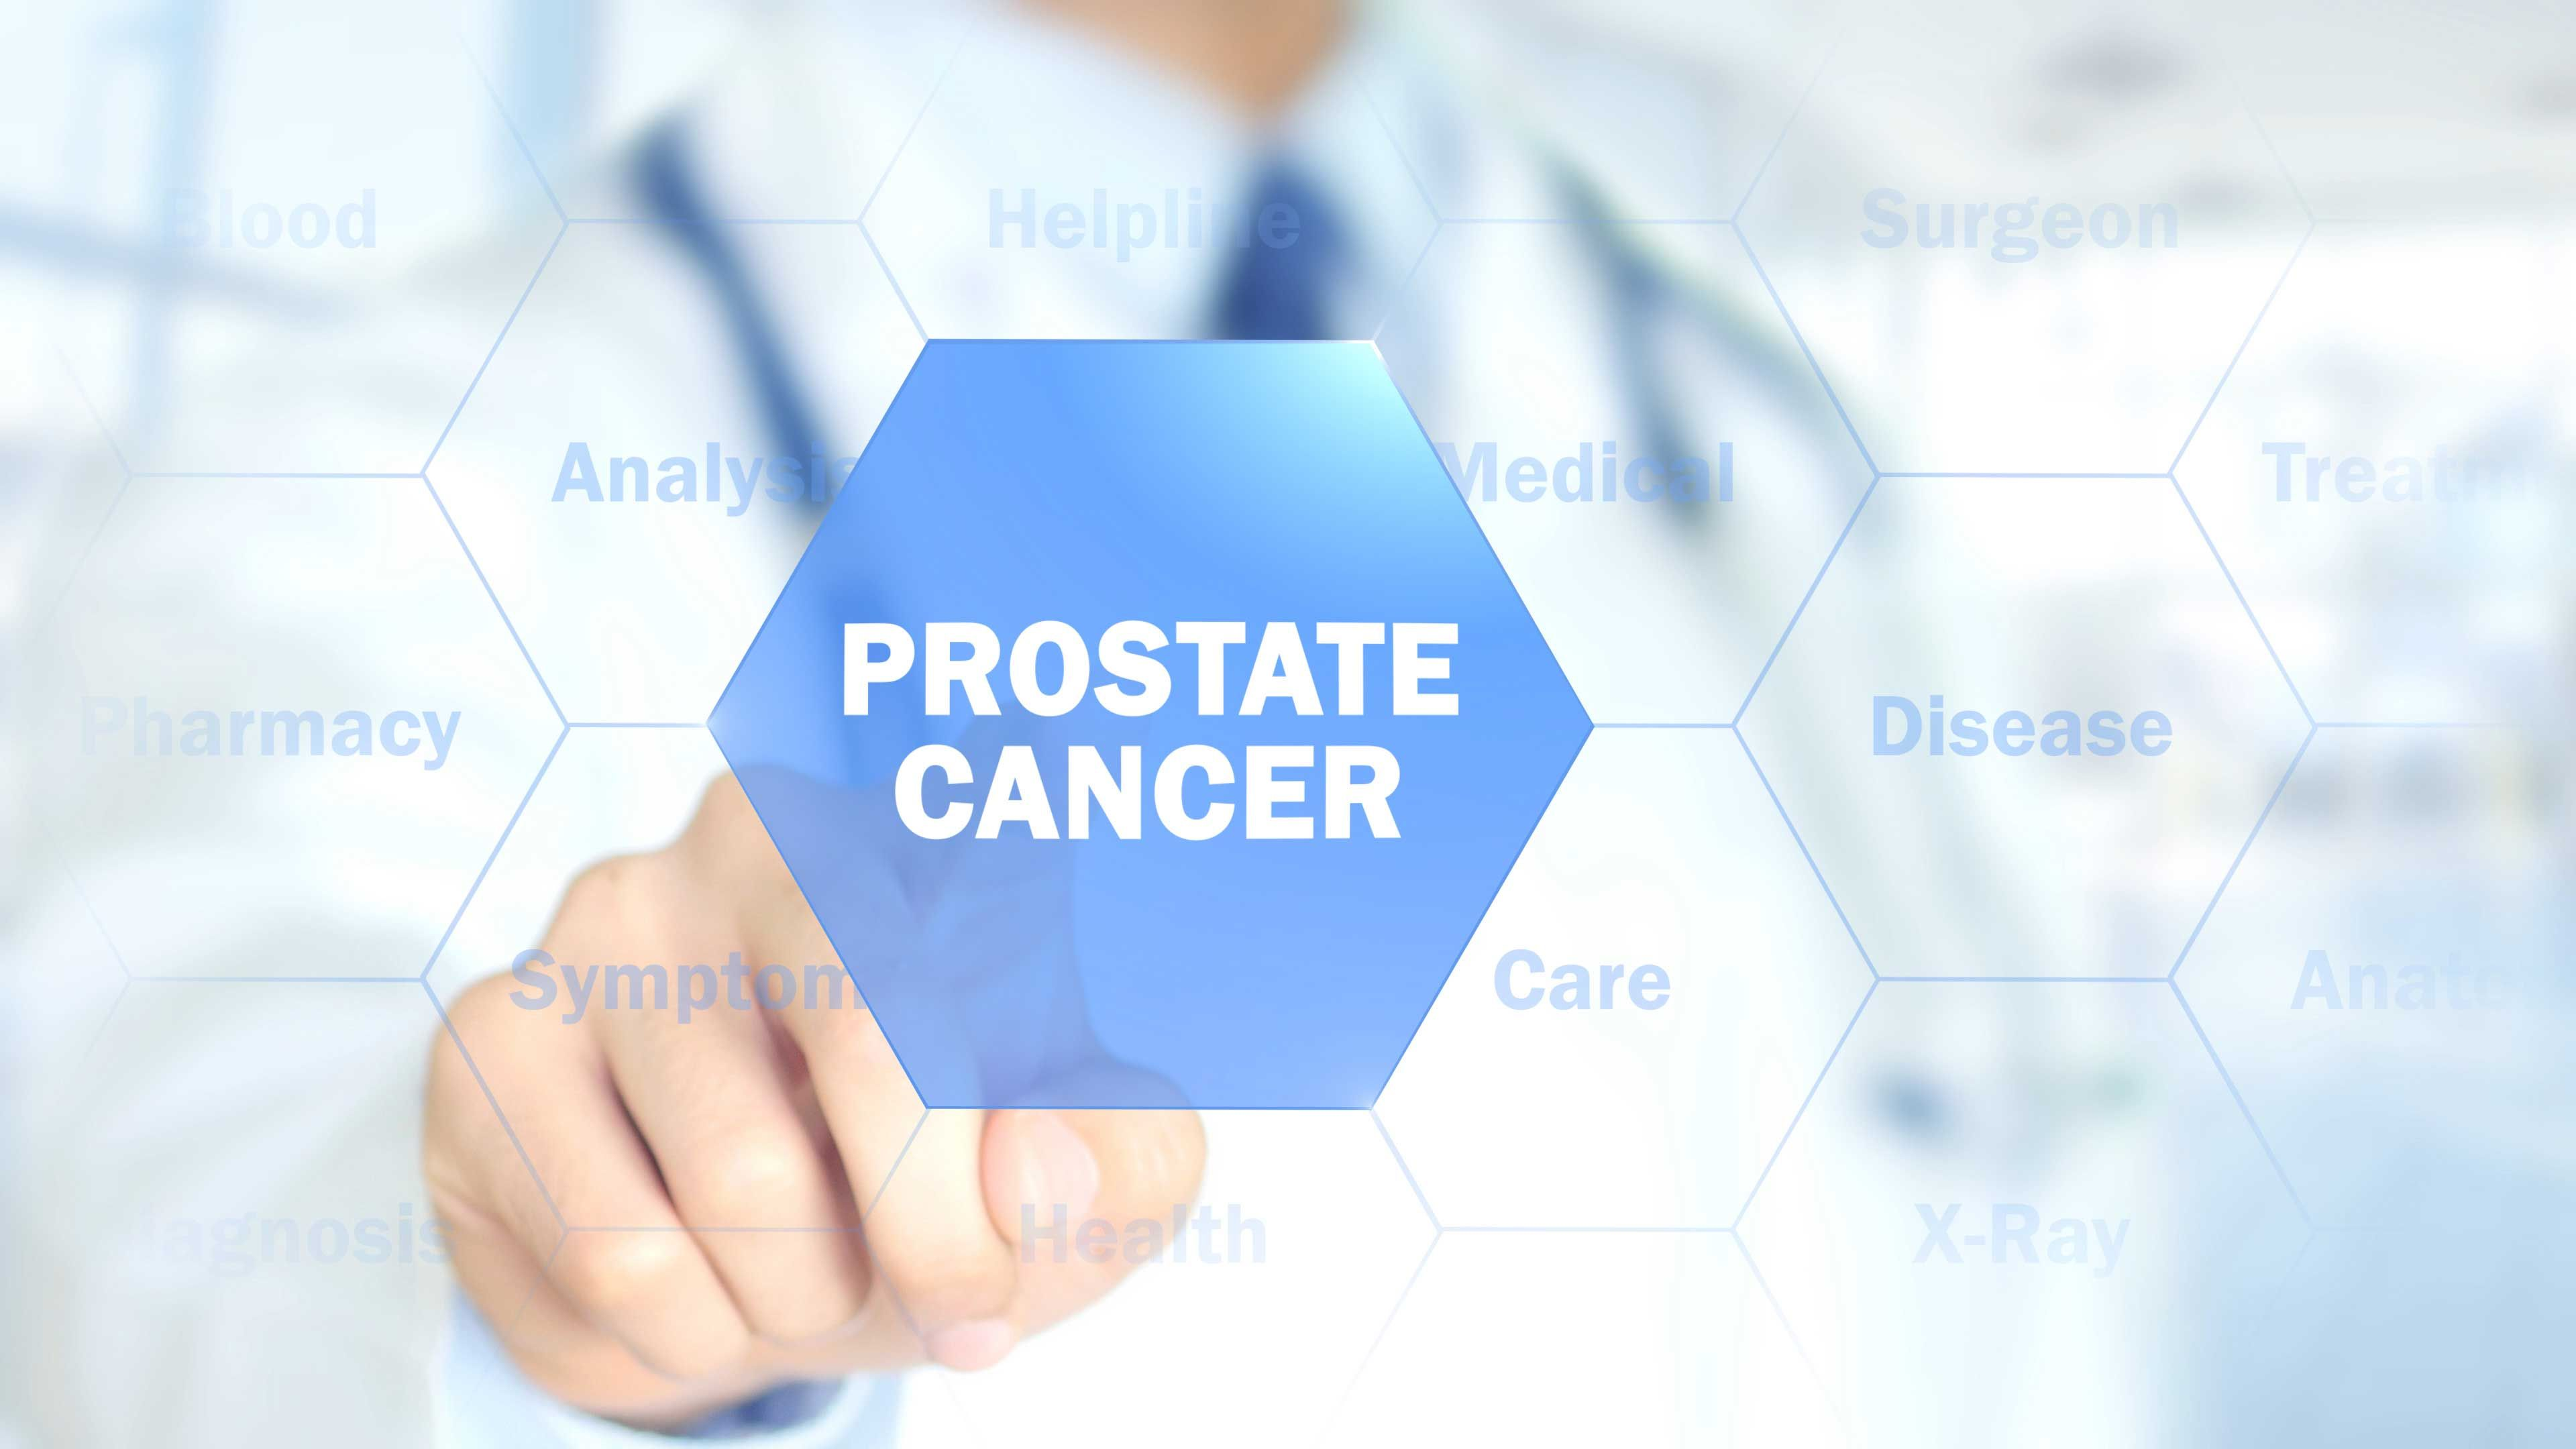 prostate cancer symptoms causes treatment and prevention [ 3840 x 2160 Pixel ]